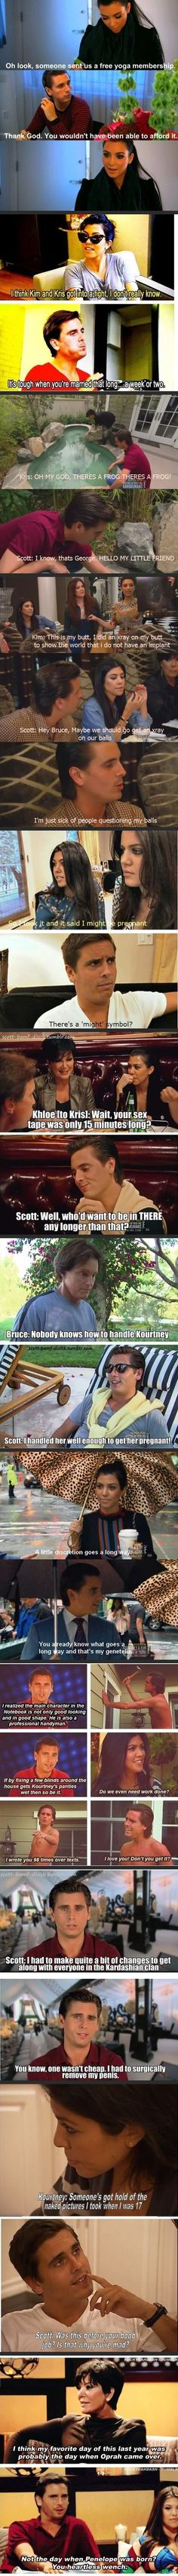 LORD DISICK THIS IS WHY I LOVE SCOTT